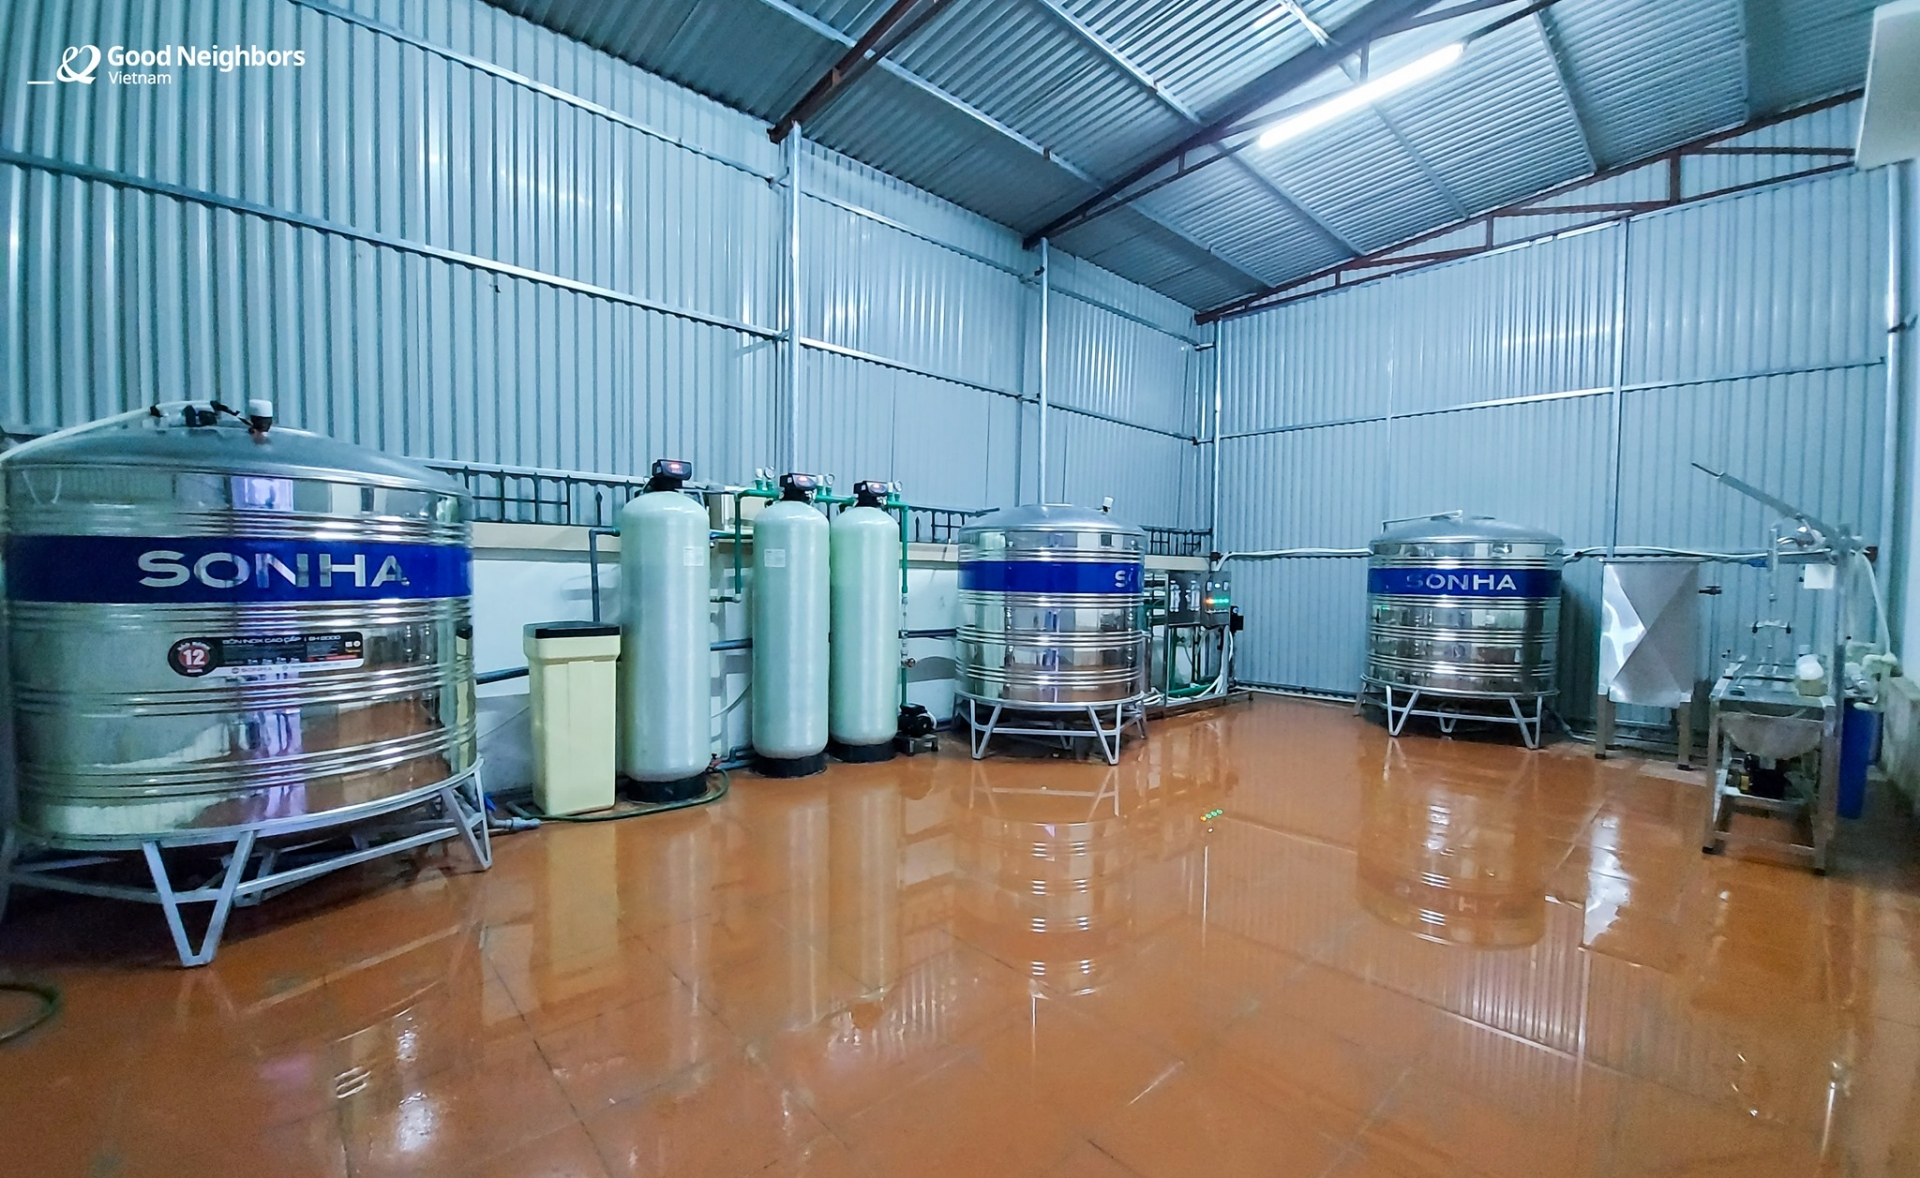 Korean NGO presents water filtration system to Thanh Hoa's commune